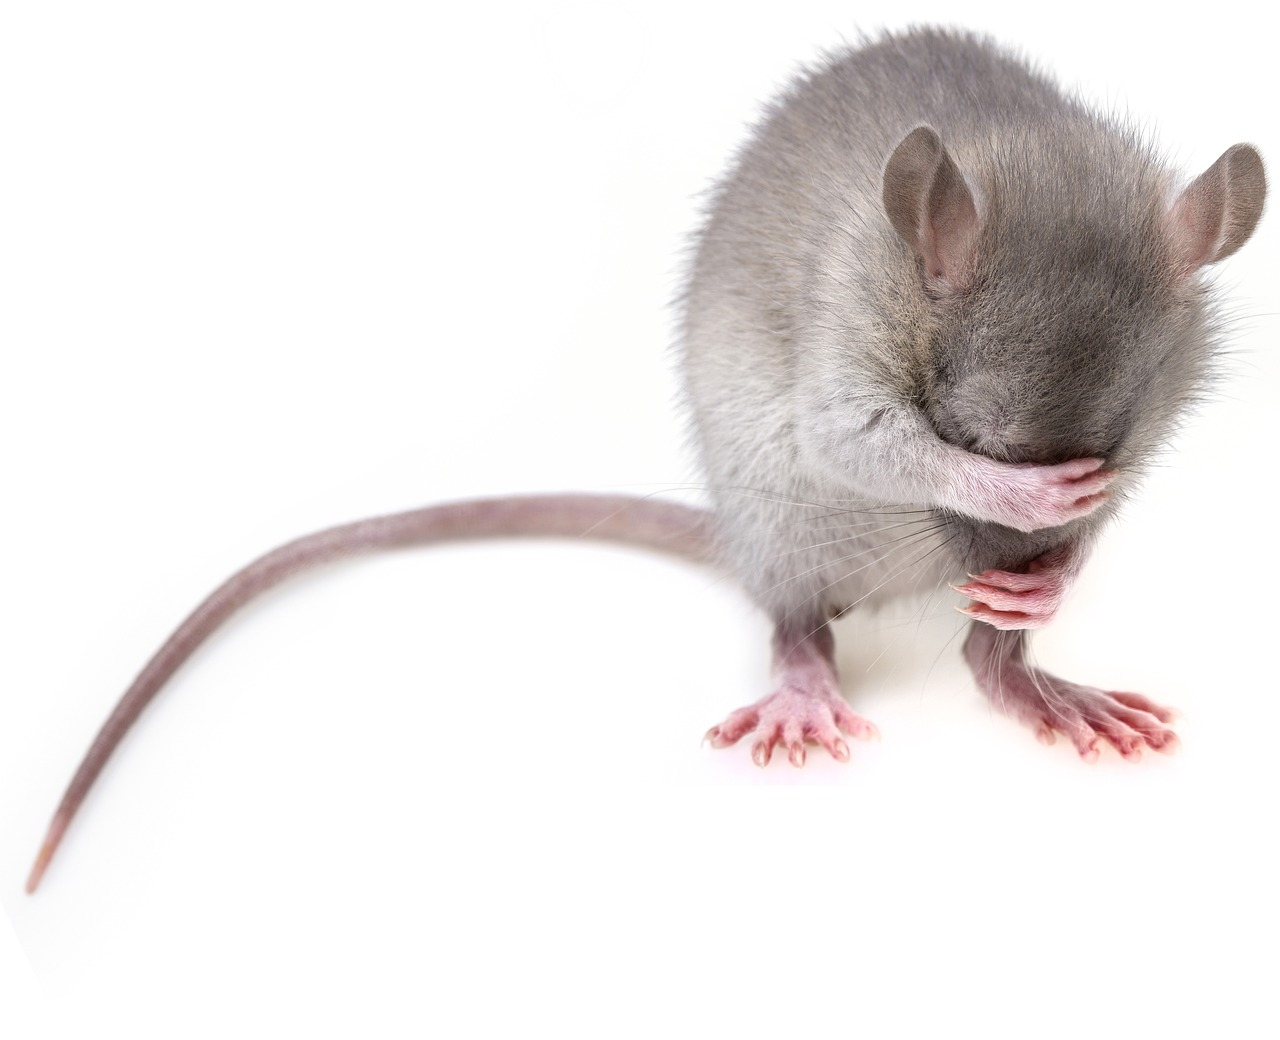 Rodents, find out why Pegasus Pest Control Company is recognized as the Best Rodent Exterminators in Sacramento and Northern California